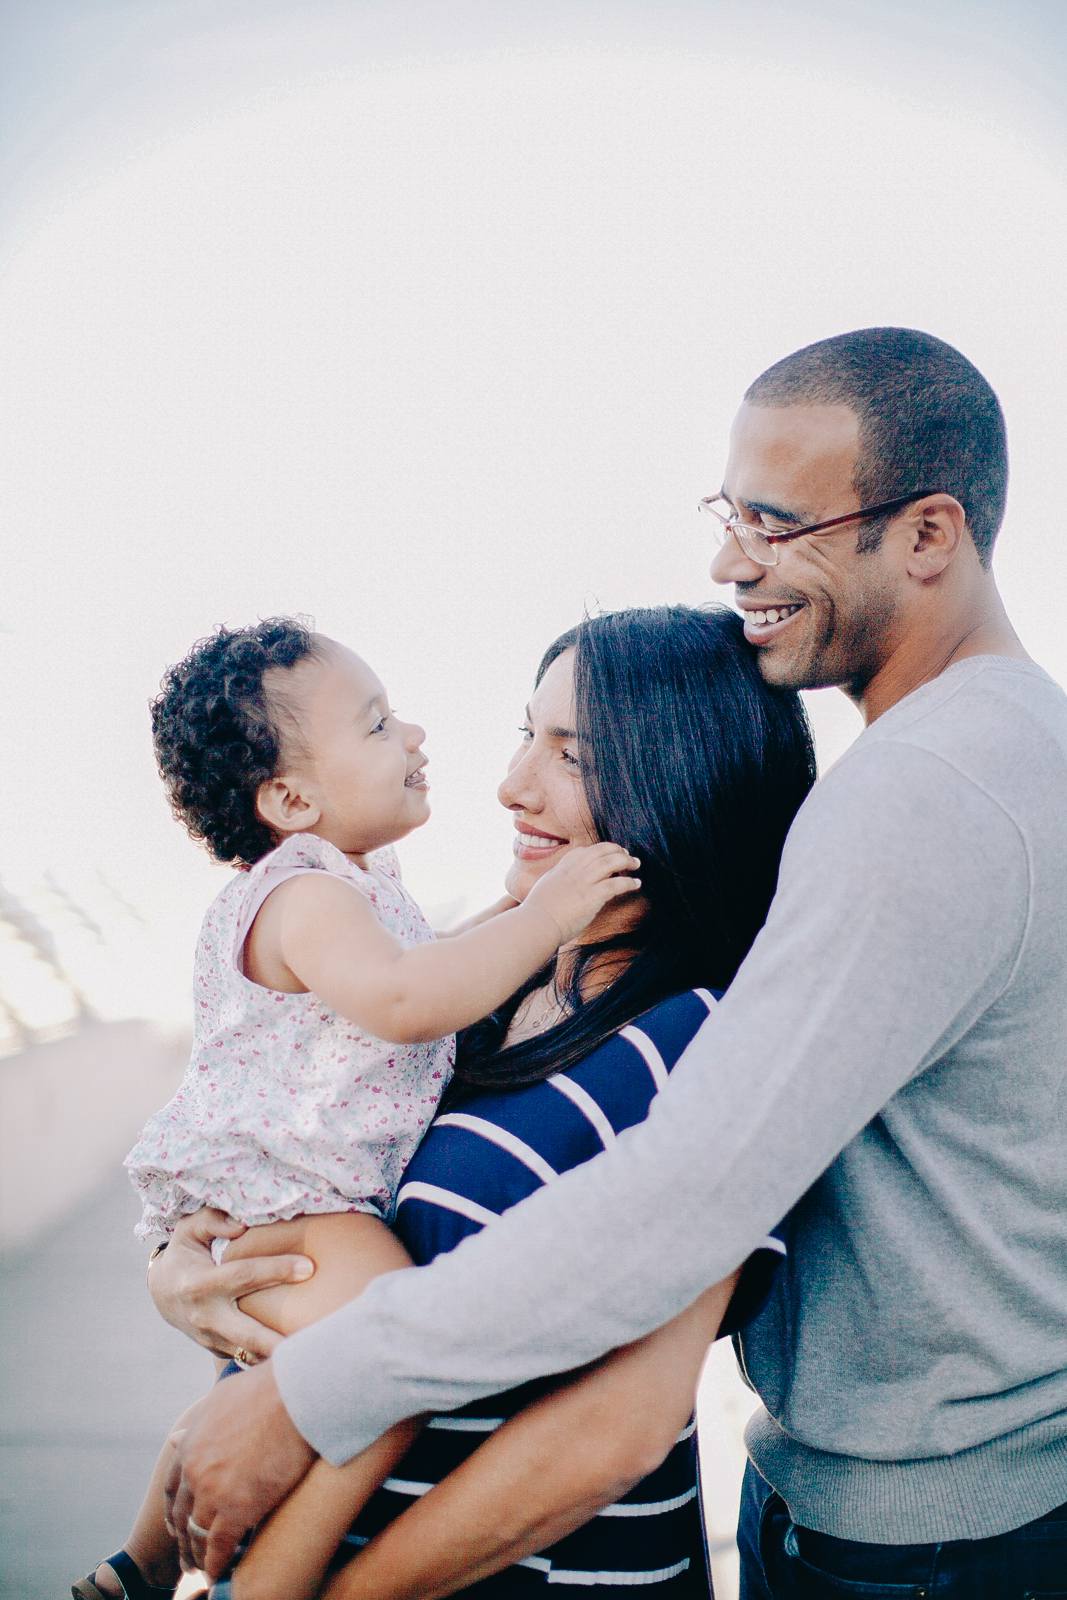 san_francisco_family_photography_larkin_ebony_siovhan_bokeh_photography_17.jpg